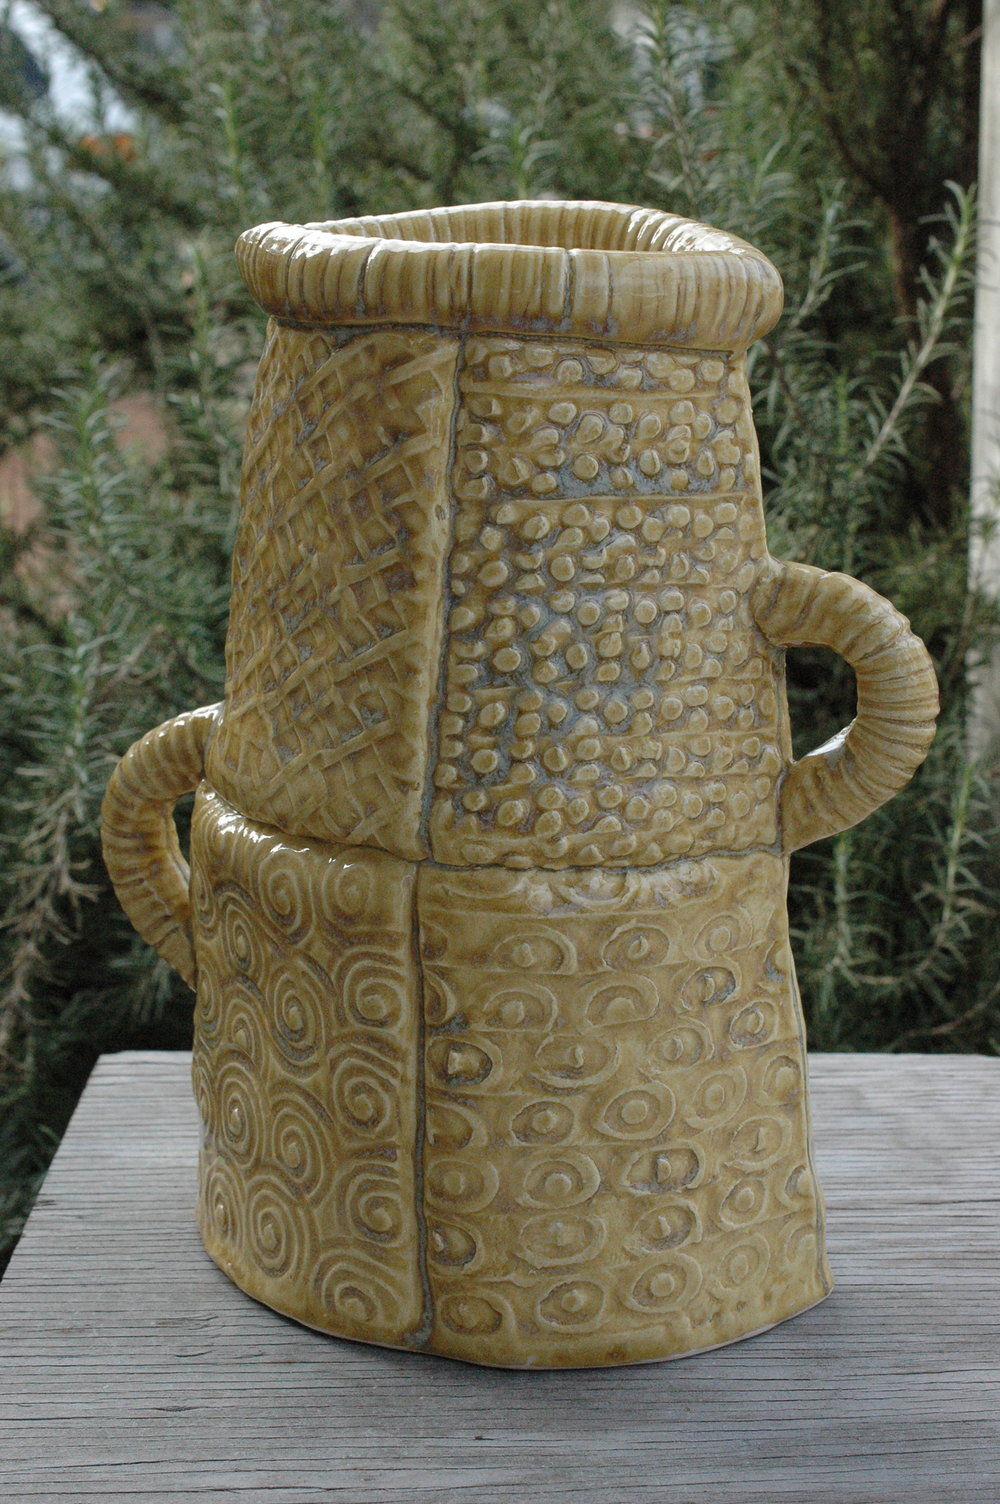 This vase shape was influenced by a vase Helene had in her house. I mimicked the design, use of different patterns and shape with a clay quilting method I learned in a handbuilding class.